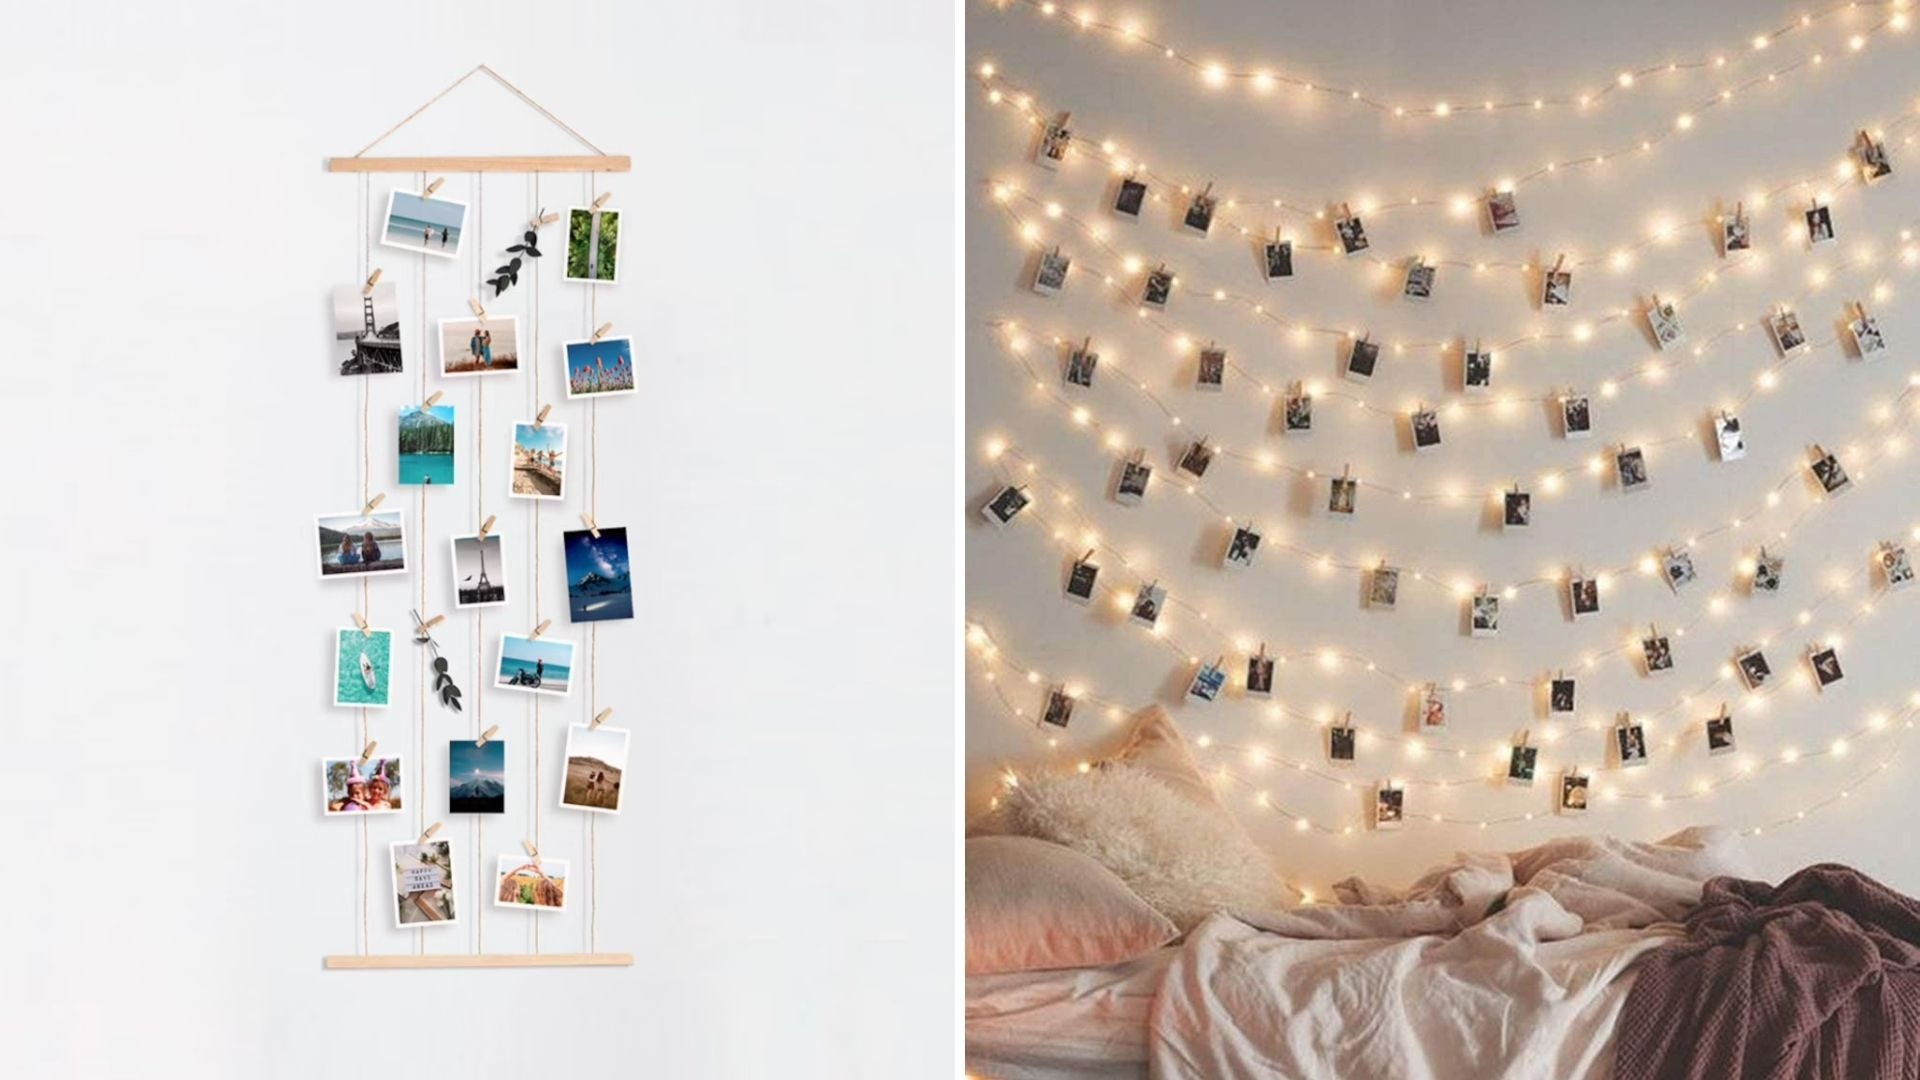 Photos hang on a wall display with clothespins and photos hang on string lights